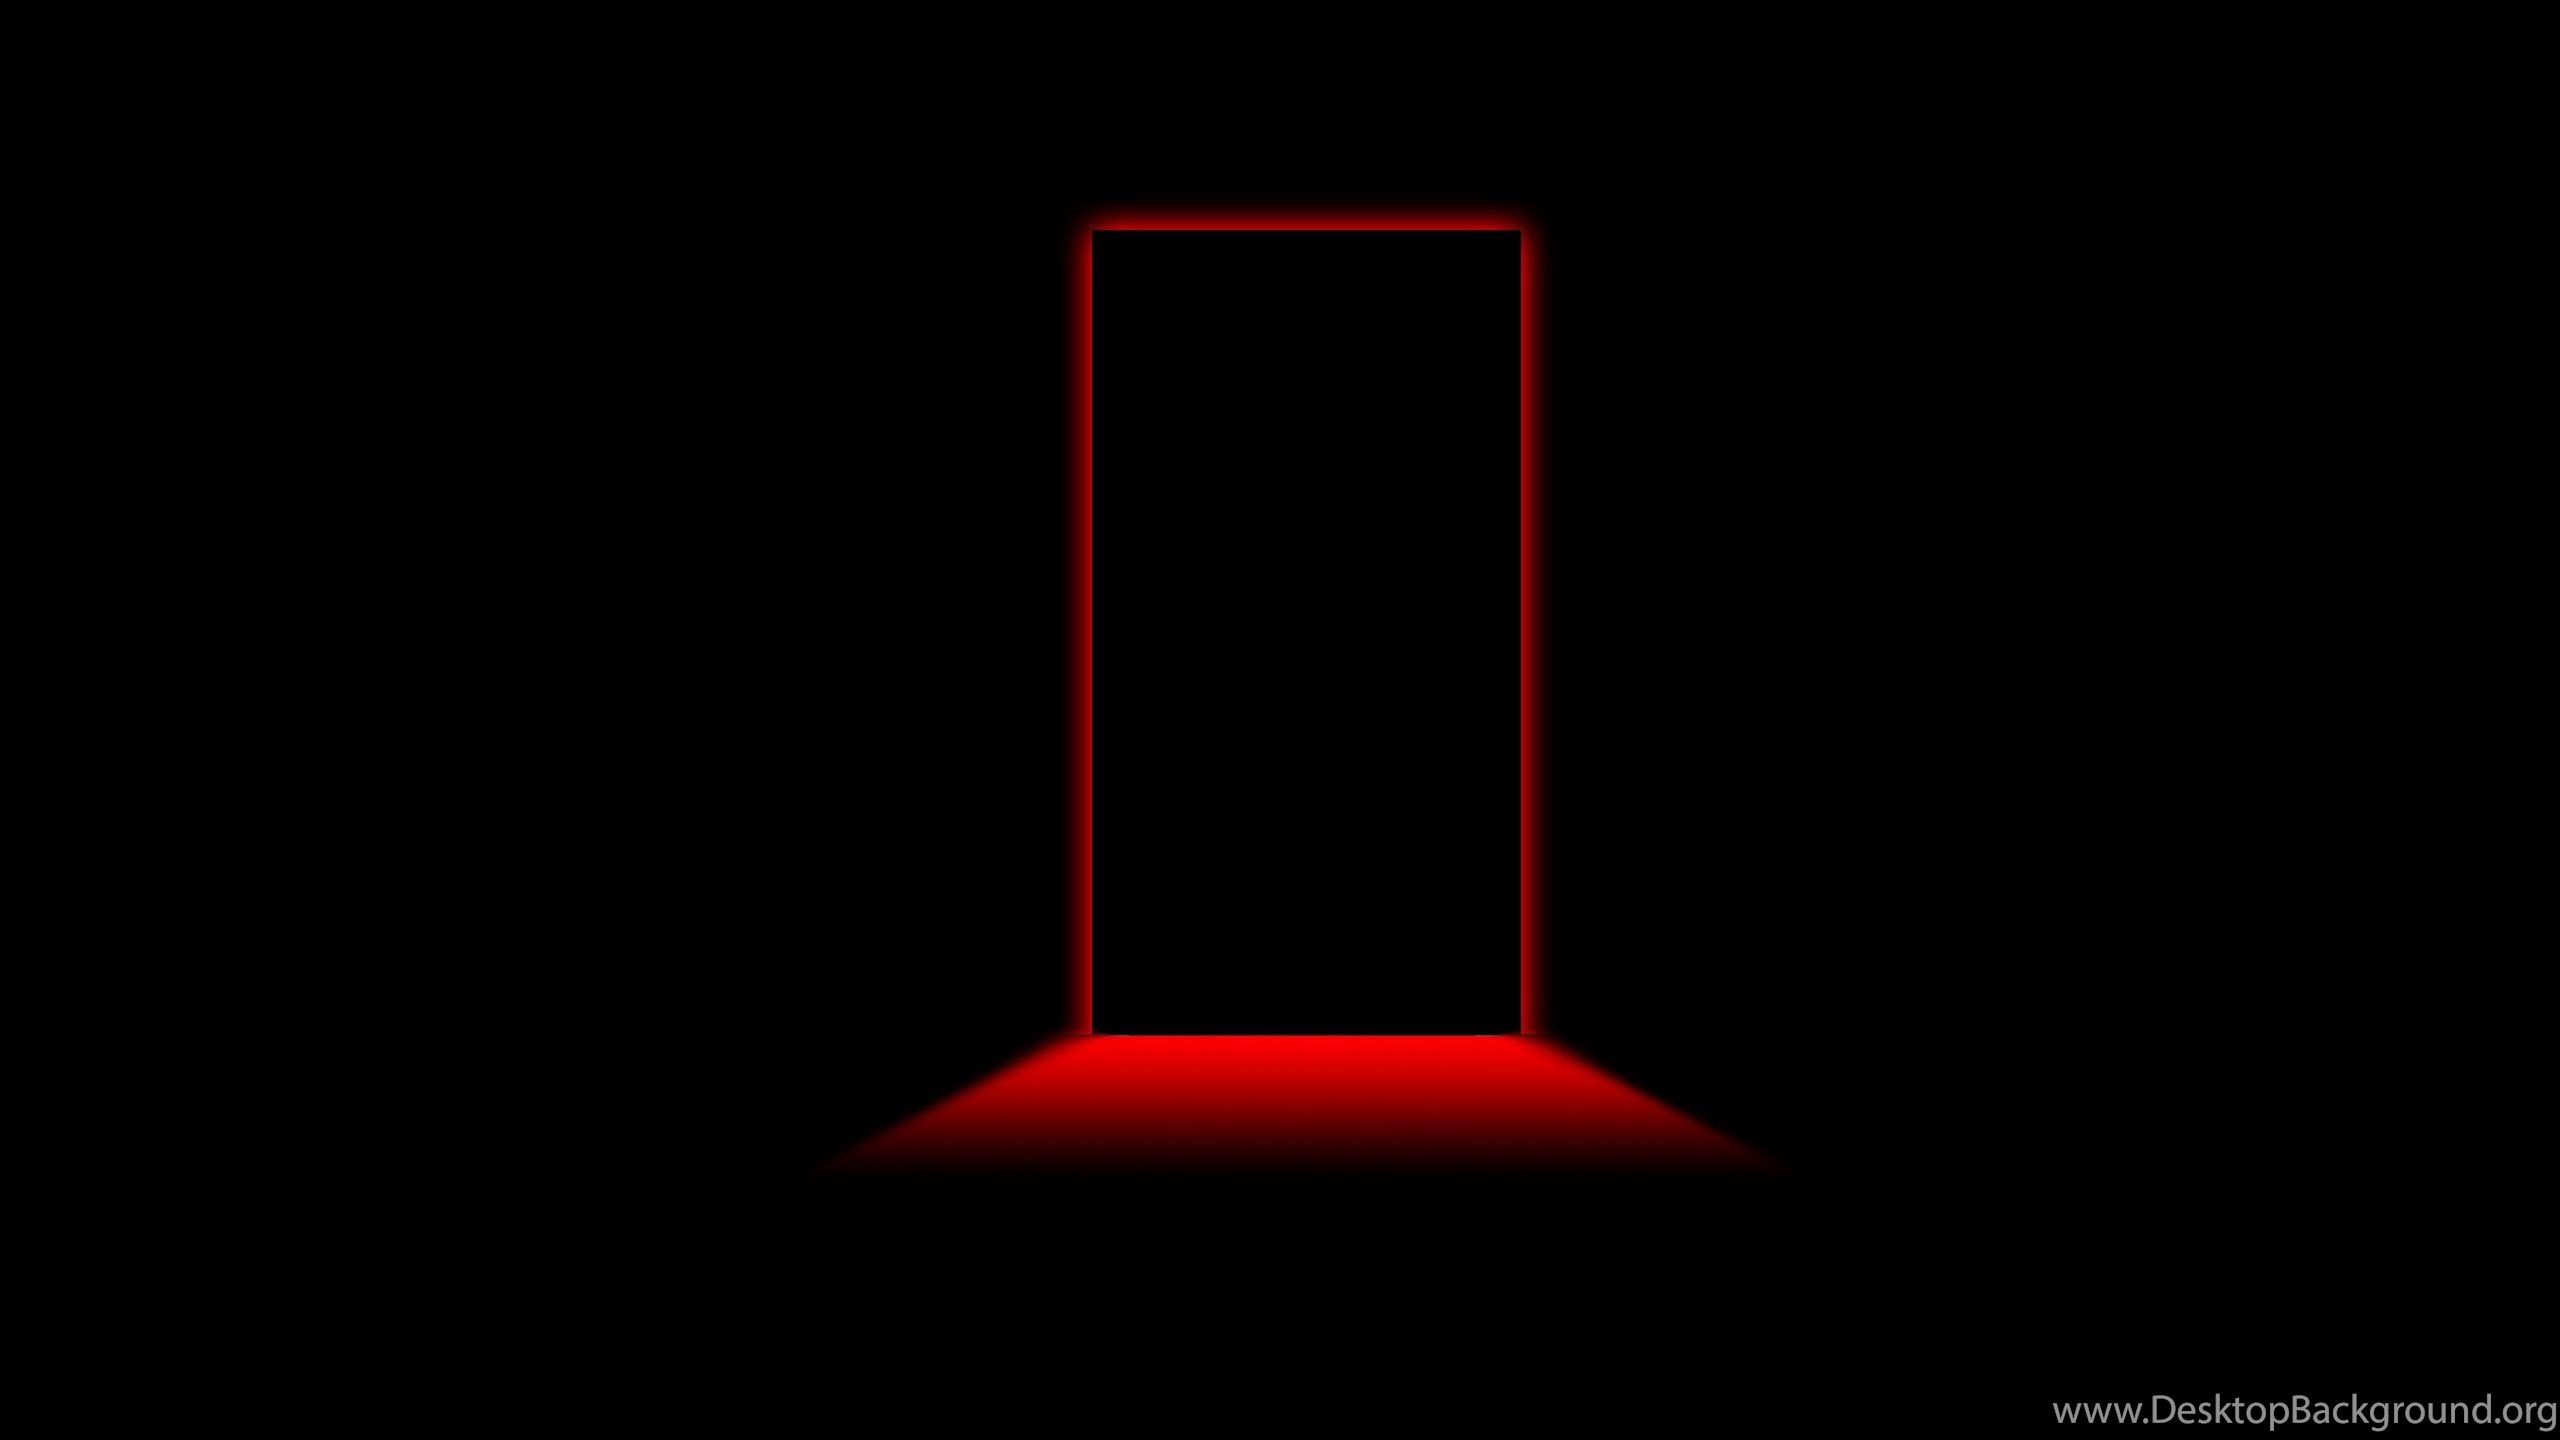 Black And Red Border Wallpapers Wallpapers Desktop Background